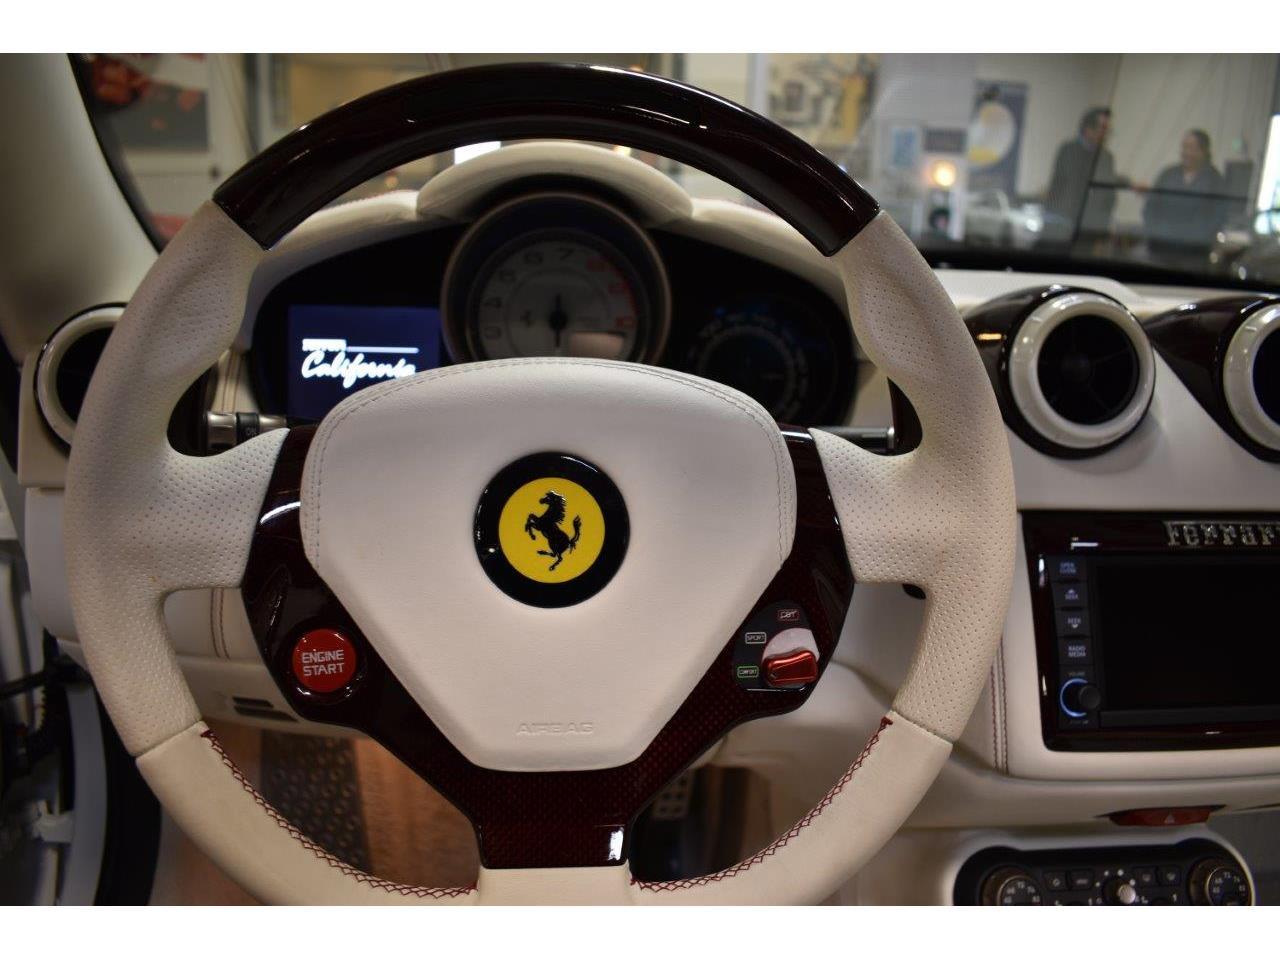 Large Picture of '10 Ferrari California located in California - $159,000.00 Offered by Crevier Classic Cars - QD41